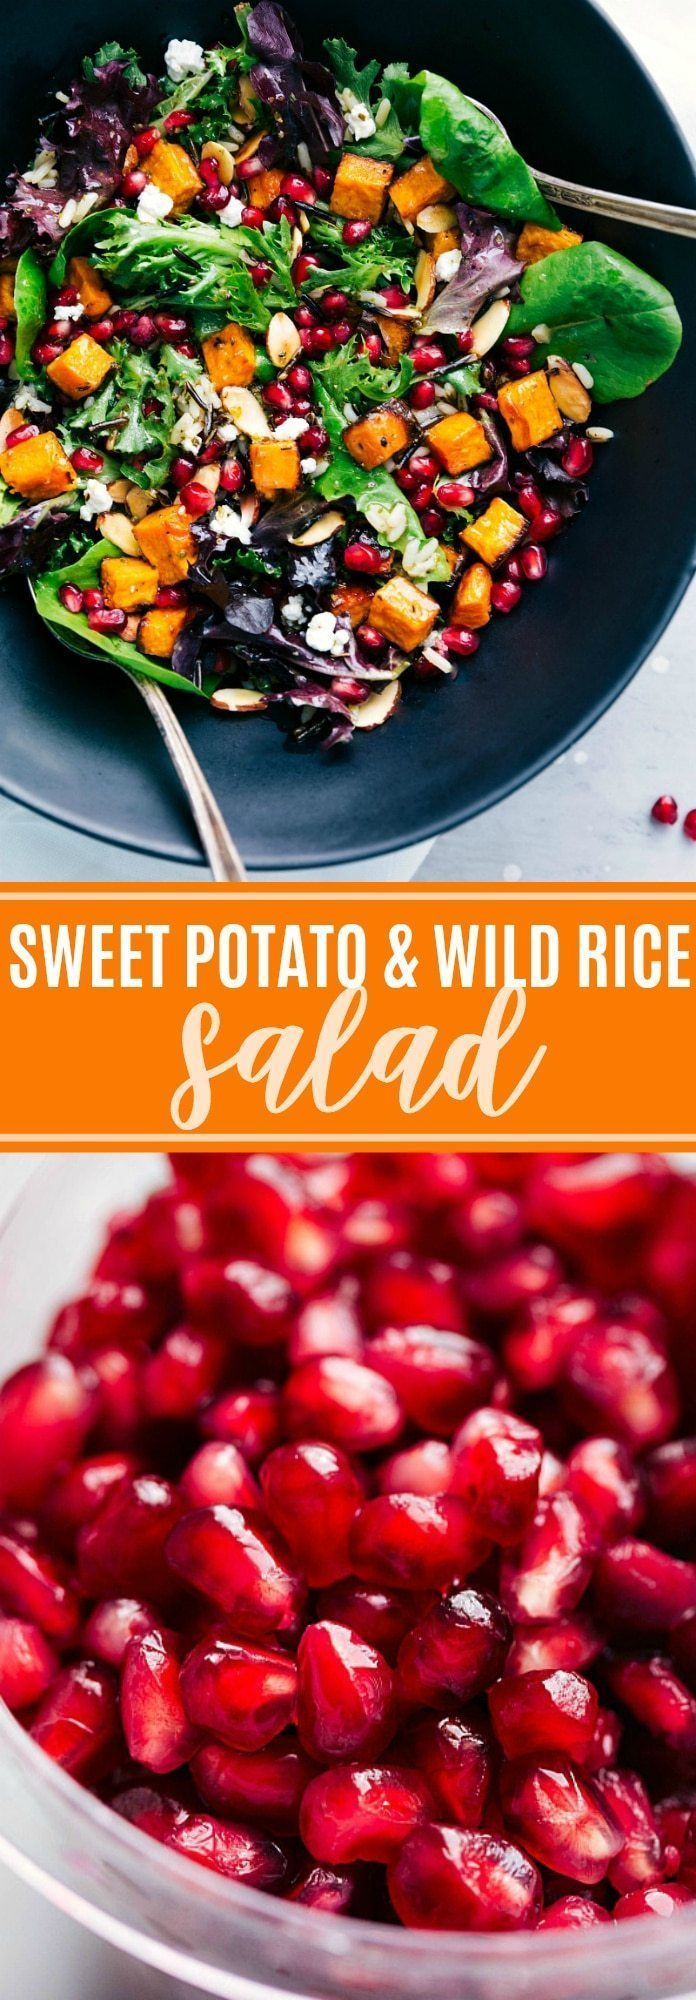 The BEST roasted sweet potato and wild rice salad   chelseasmessyapron.com   #sweetpotato #wildrice #salad #thanksgiving #fall #health #healthy #lemon #dressing #best #popular #easy #quick #pomegranate #almond #cheese #kidfriendly